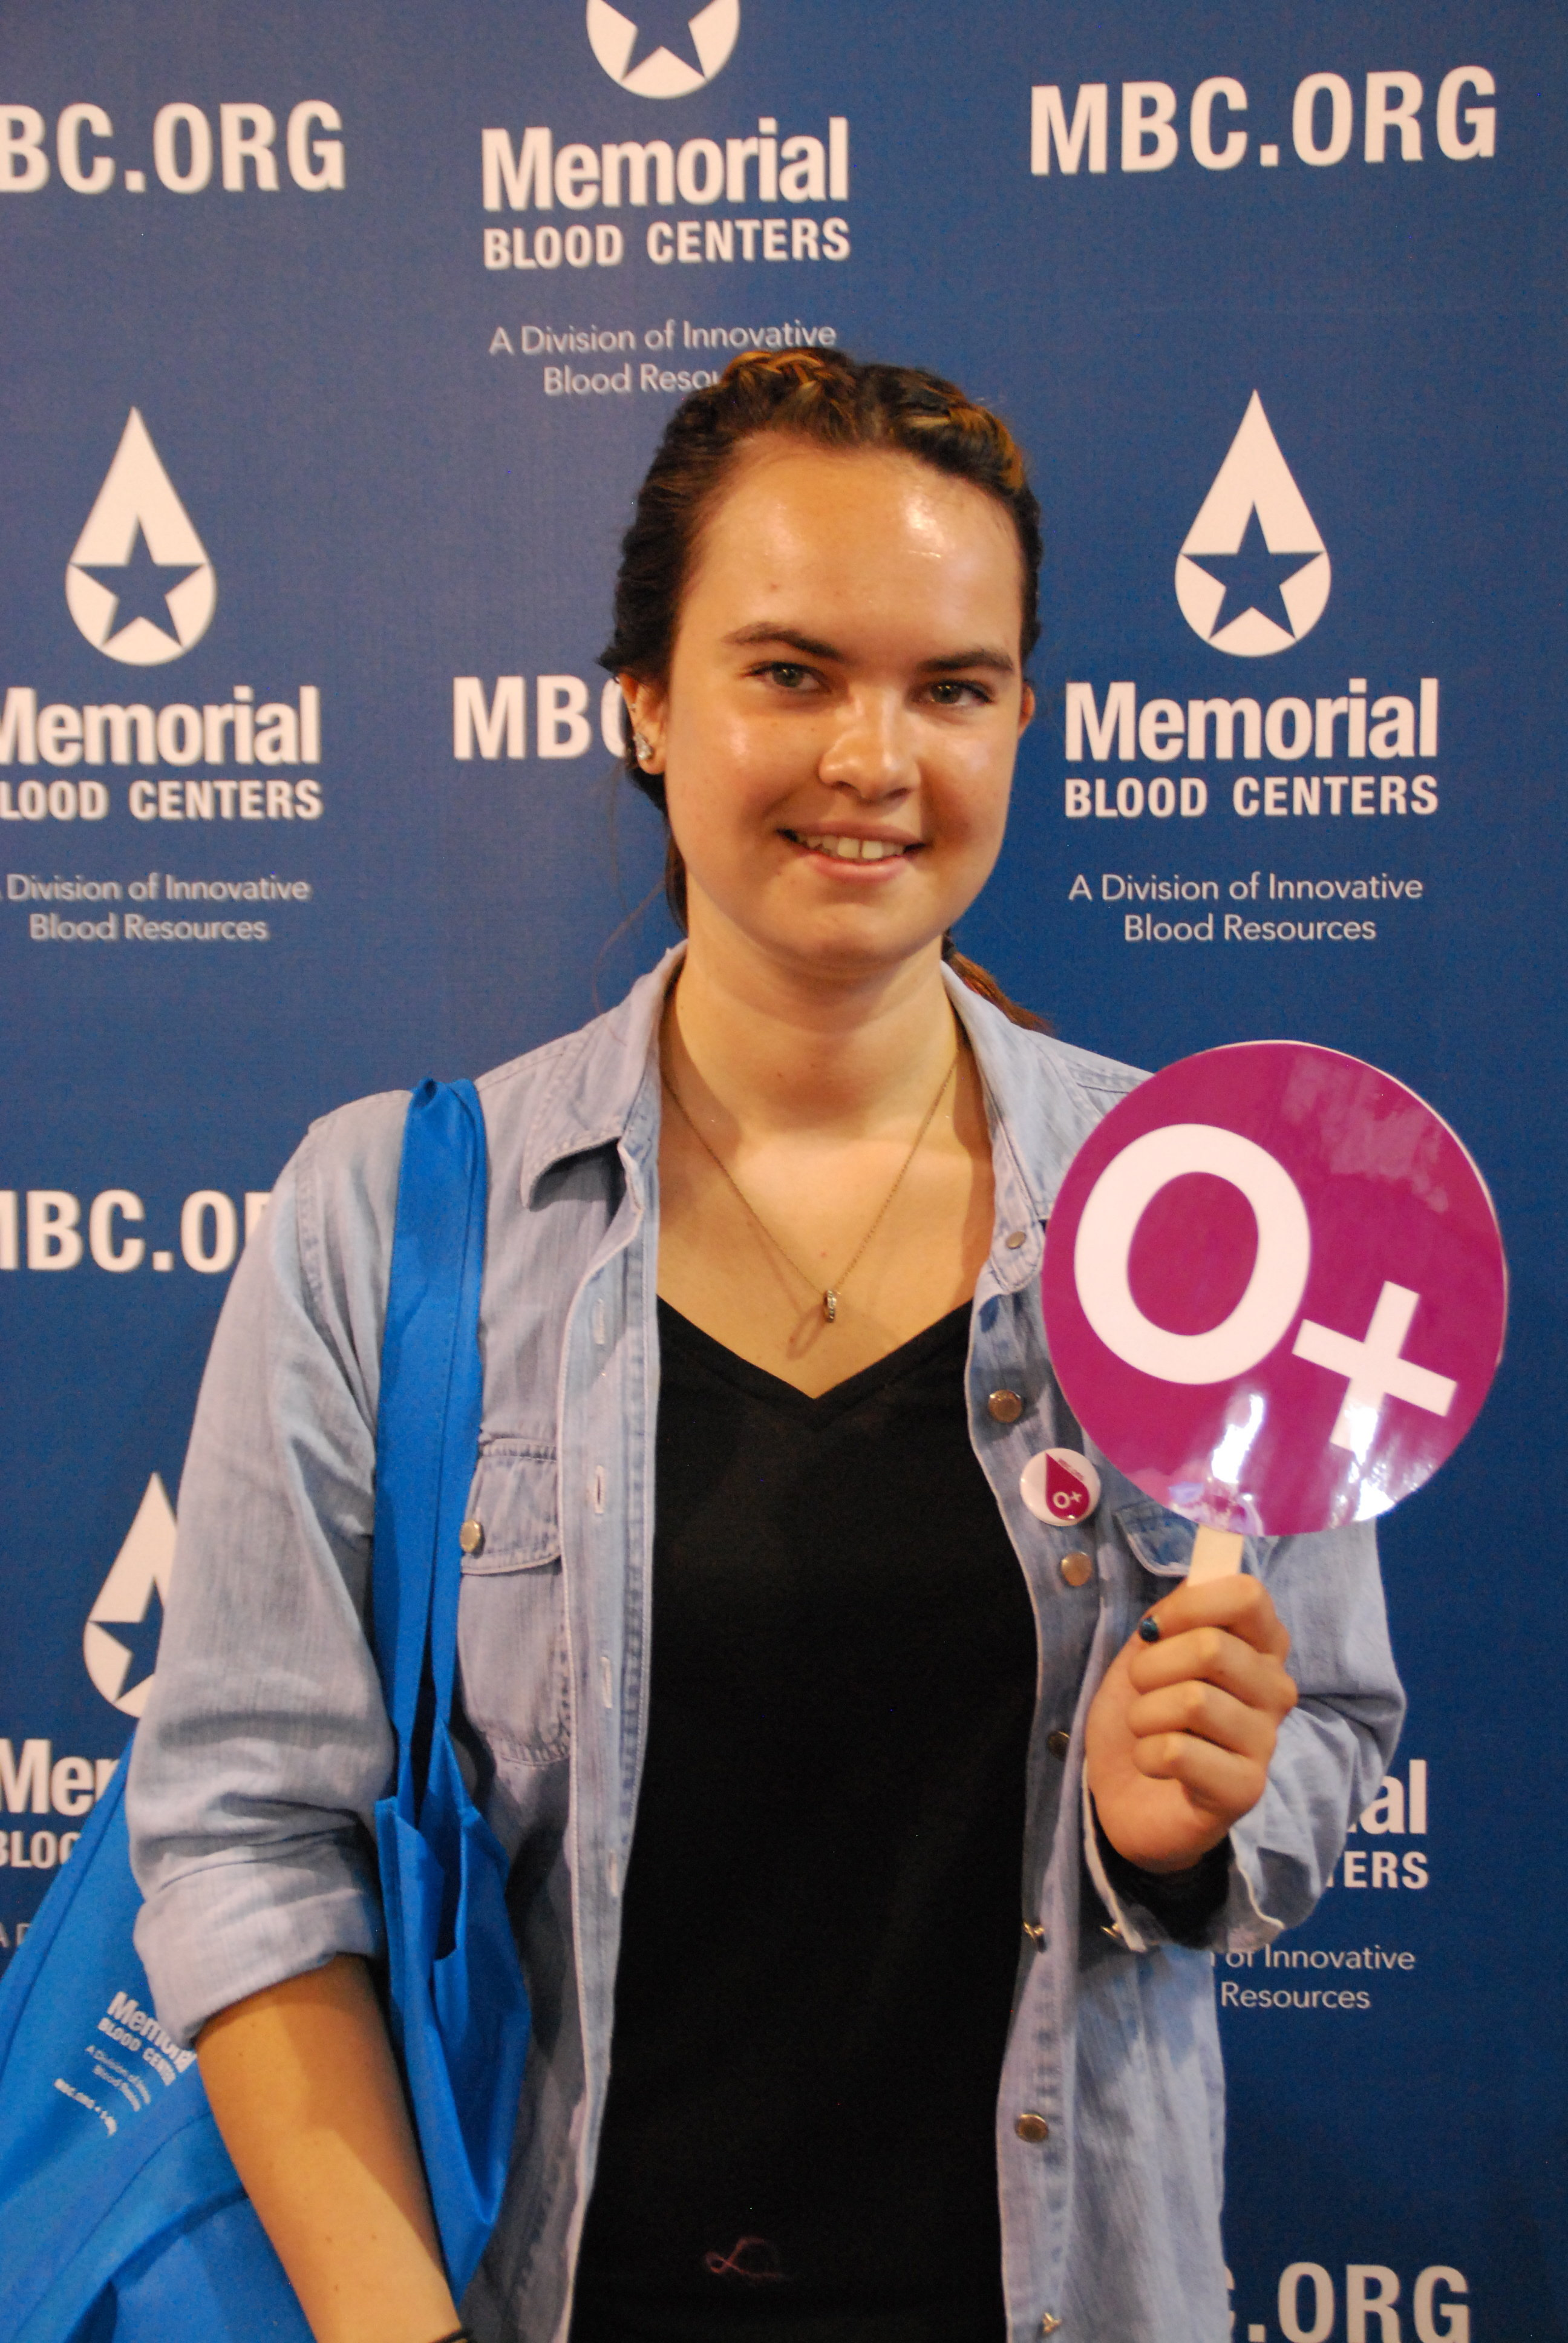 Erin, the 60,000th visitor to MBC's booth at the MN State Fair